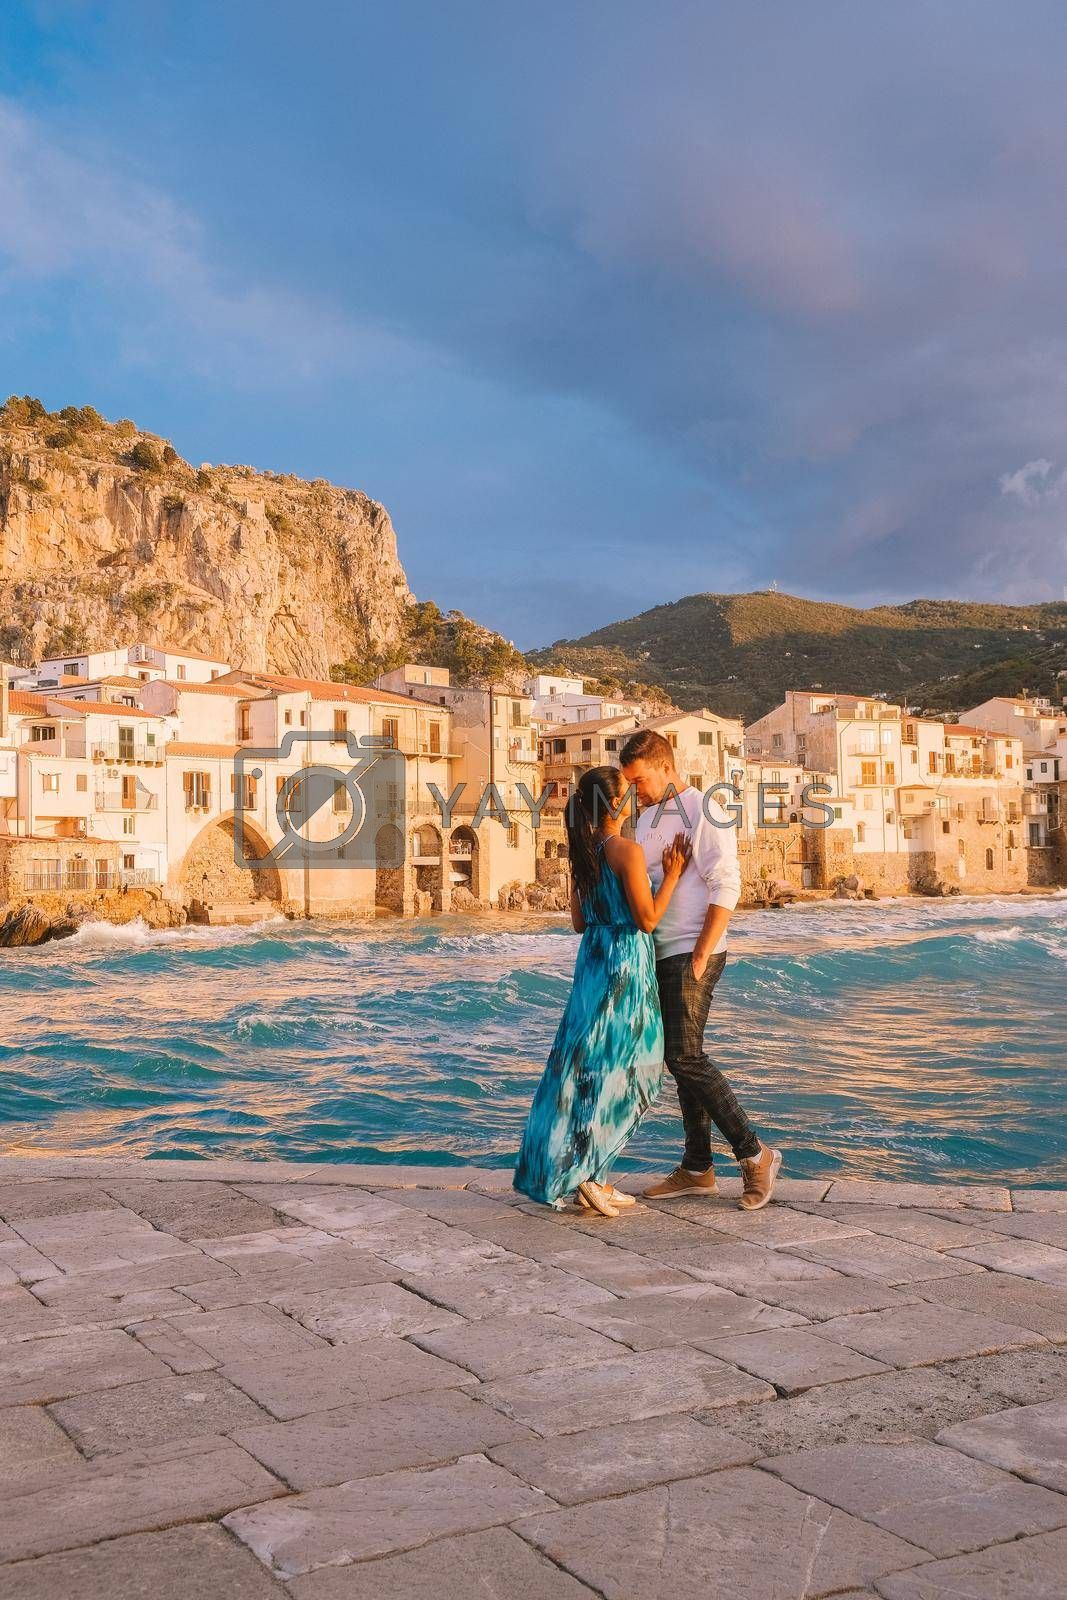 Royalty free image of Cefalu Sicily, couple watching sunset at the beach of Cefalu Sicilia Italy, mid age men and woman on vacation Sicily by fokkebok